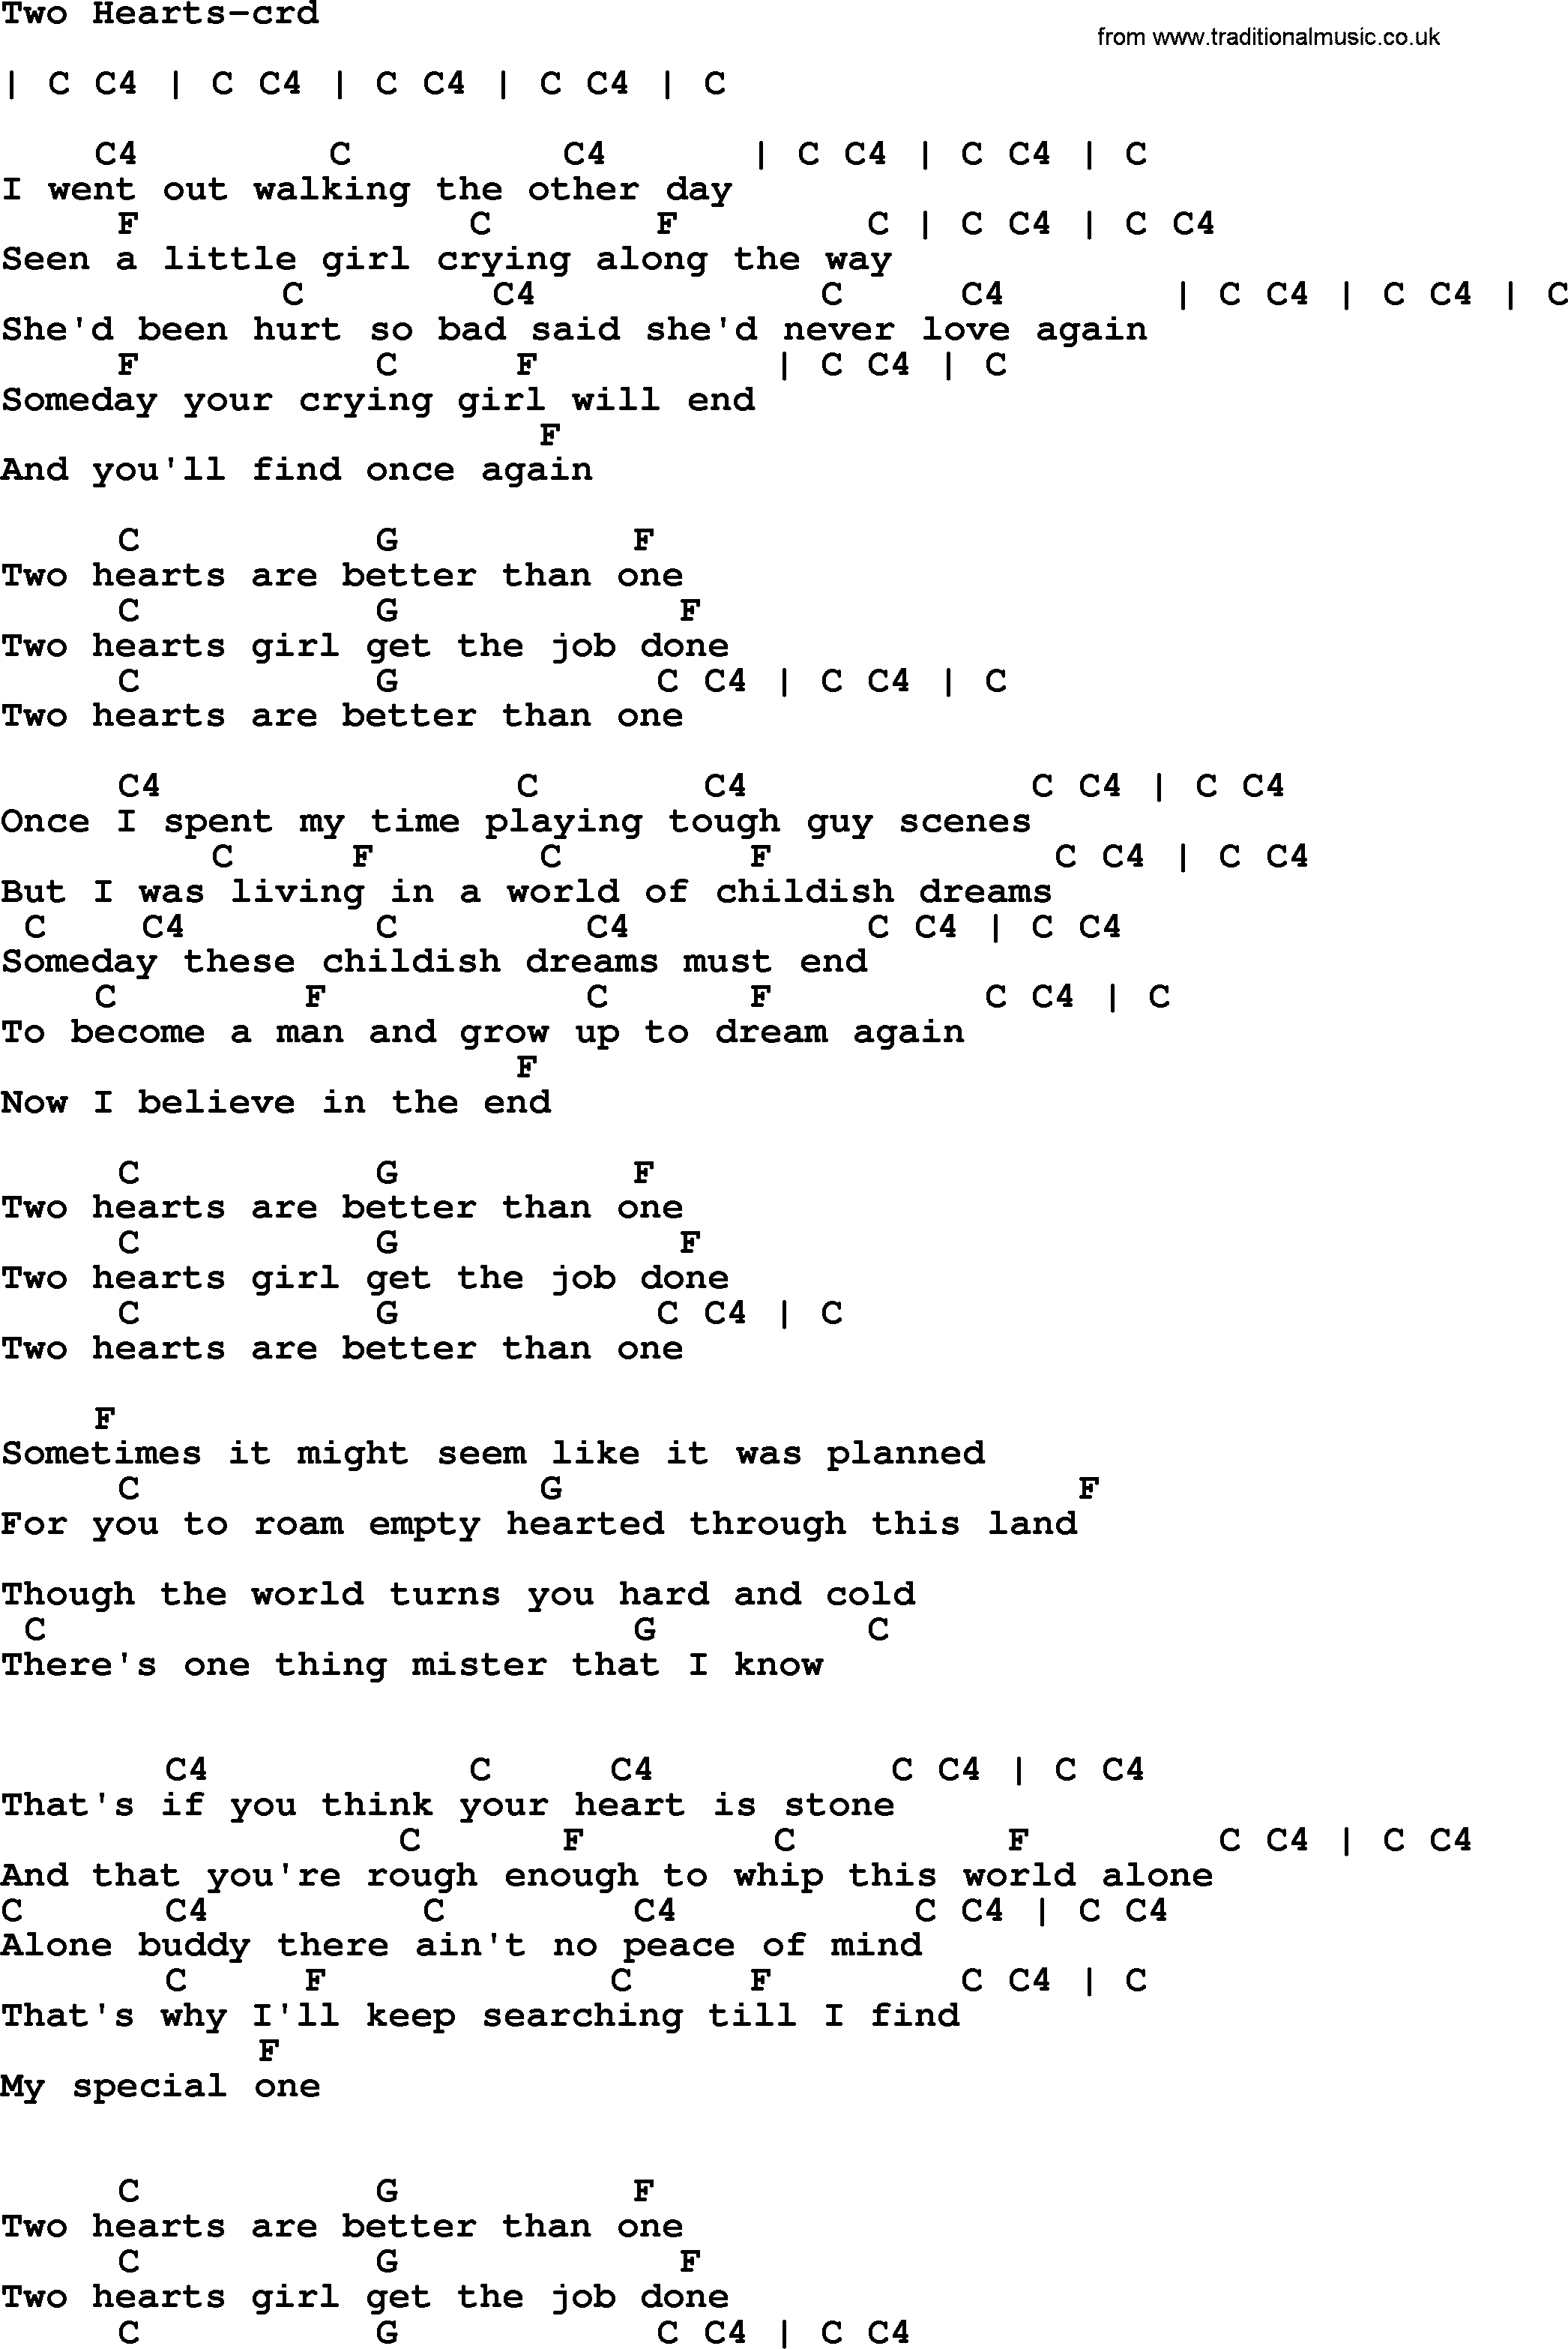 Bruce Springsteen Song Two Hearts Lyrics And Chords